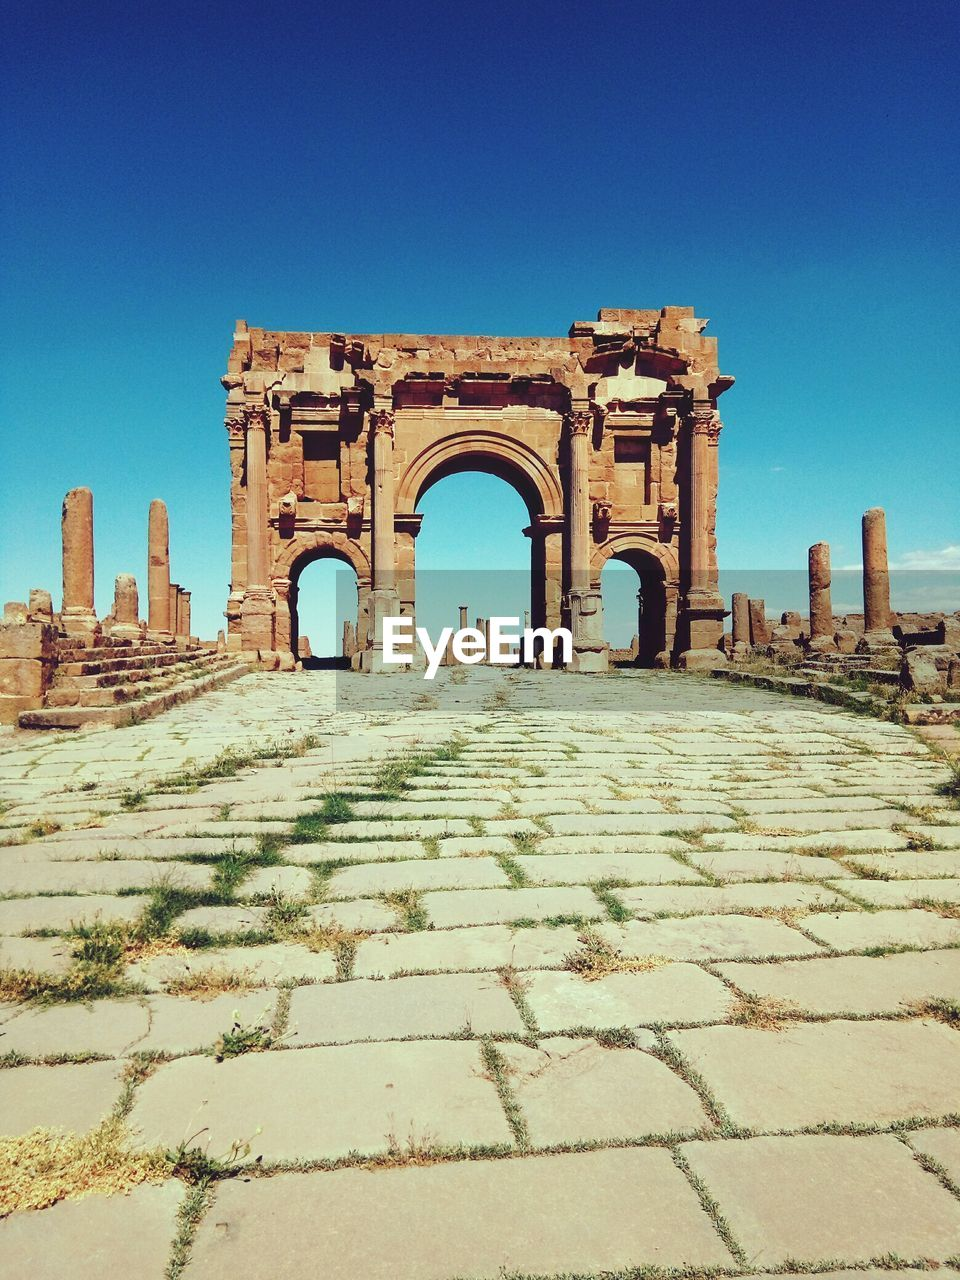 architecture, history, built structure, the past, sky, clear sky, arch, blue, the way forward, day, nature, ancient, direction, travel destinations, no people, building exterior, tourism, travel, sunlight, building, outdoors, ancient civilization, architectural column, ruined, surface level